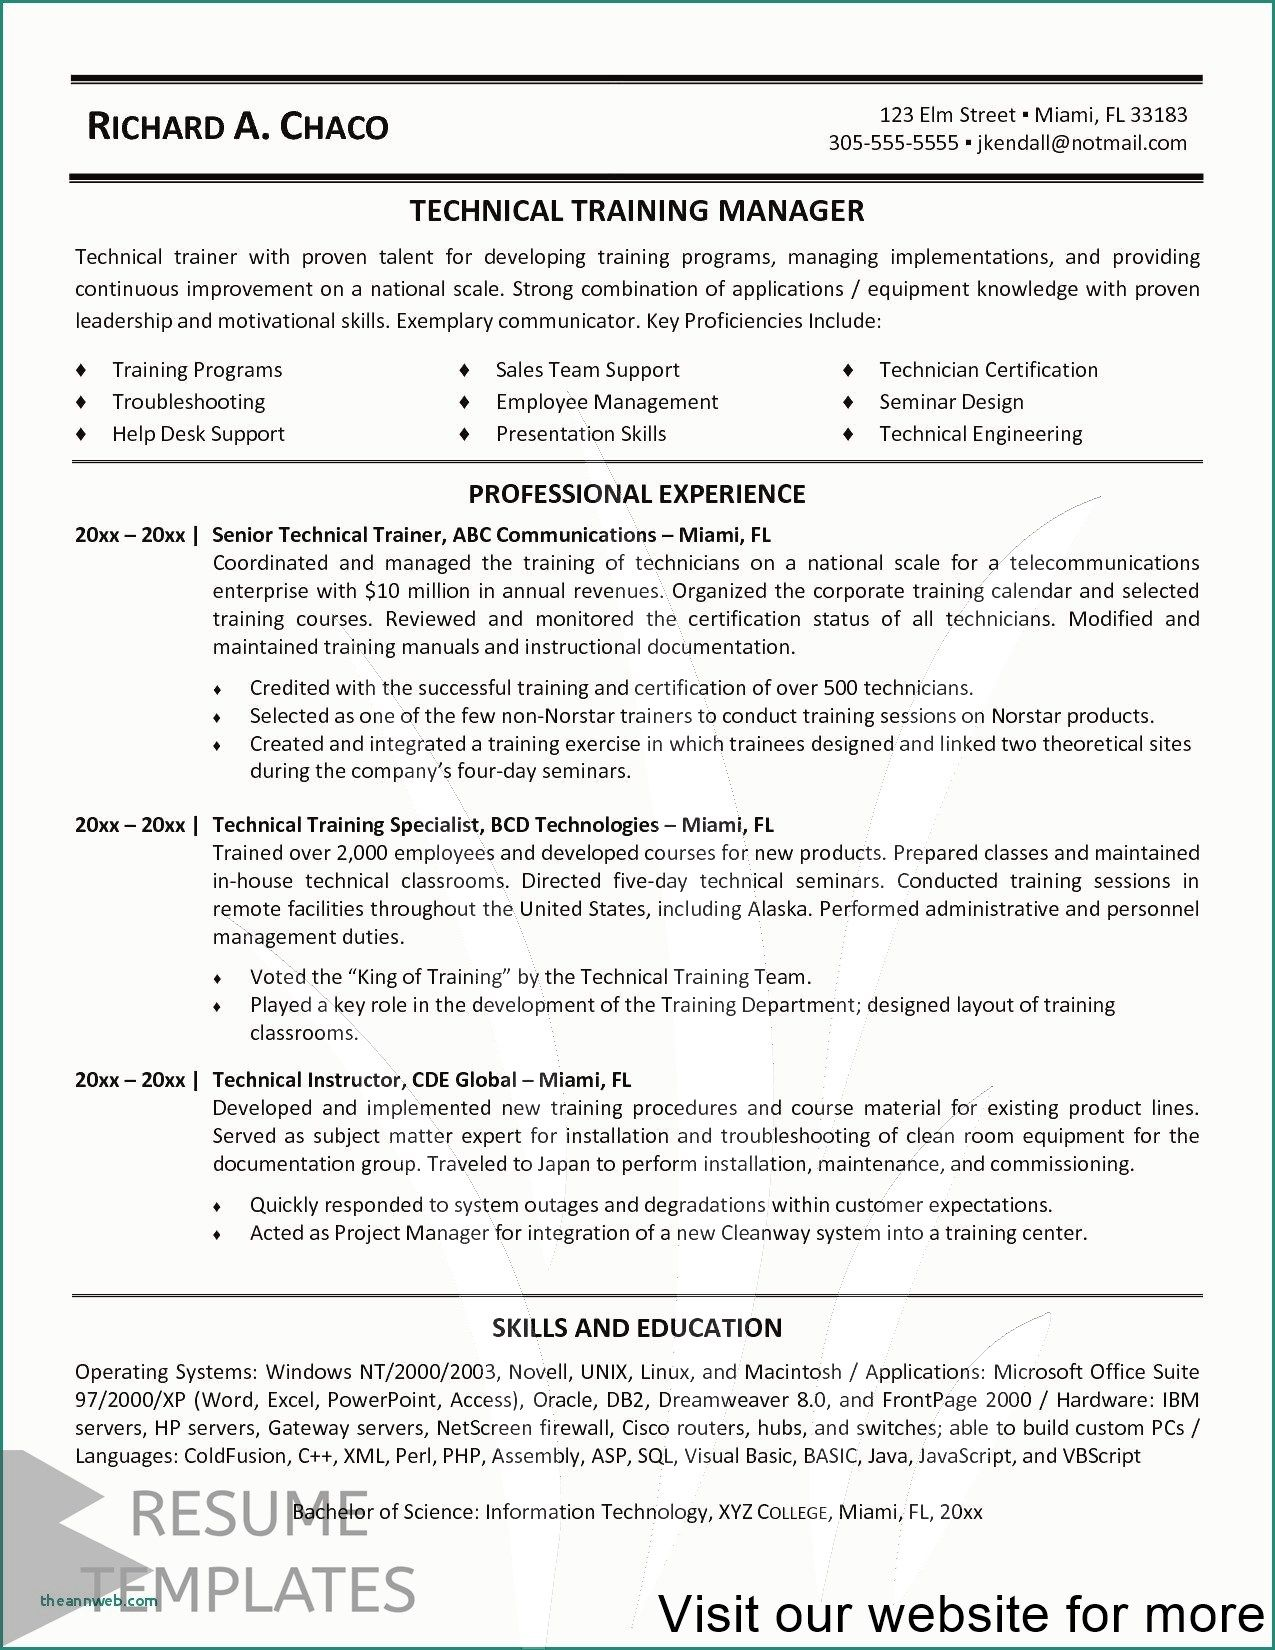 Simple Resume Examples 2020